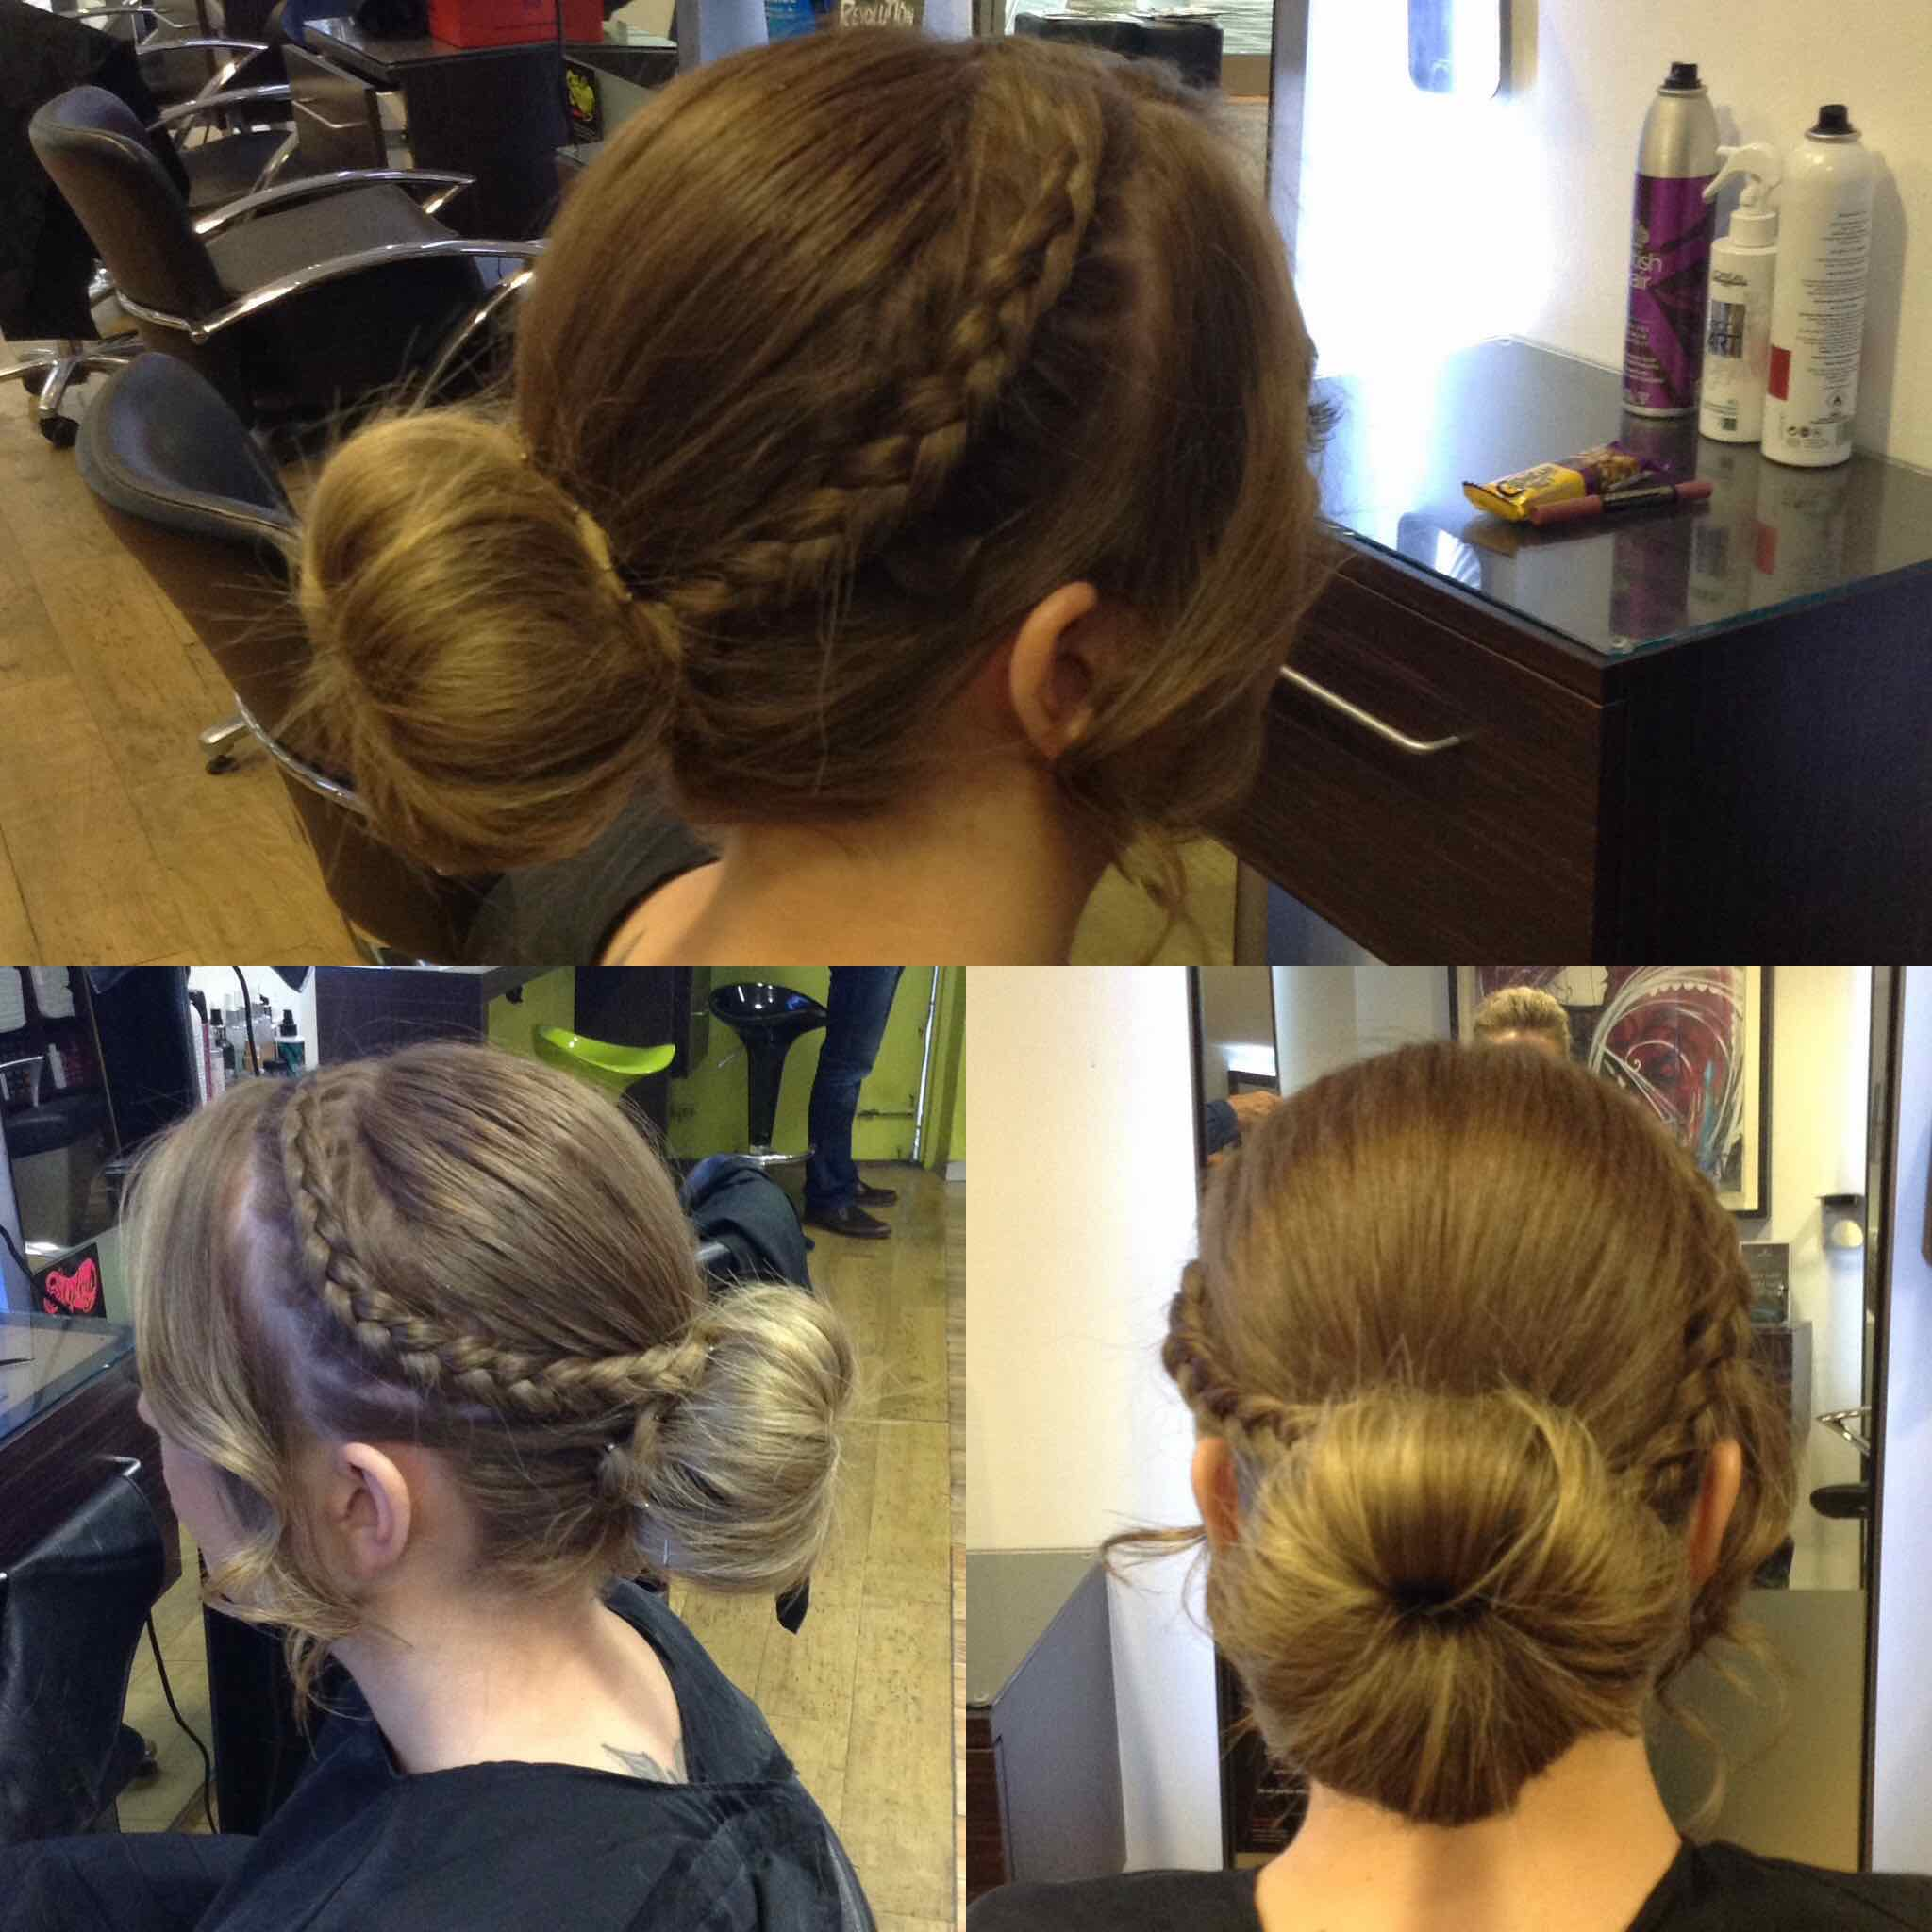 Story Best Hairstyles For Wedding Guests: Prom And Wedding Guest Hair Ideas From Central Bristol